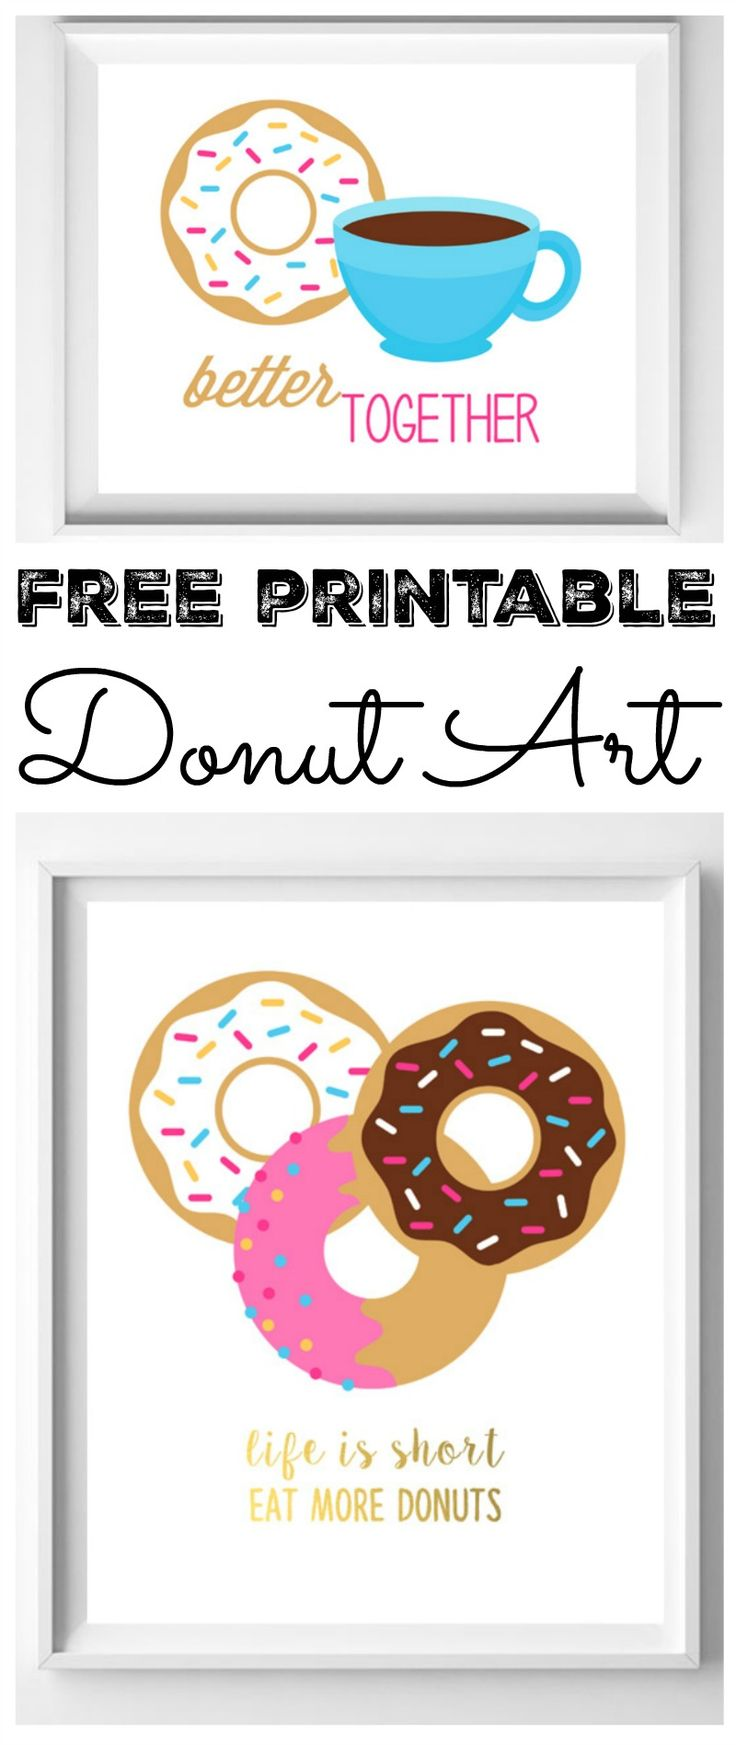 Free printables kitchen hearts clipart work clip royalty free library 17 Best ideas about Free Printable Art on Pinterest | Free prints ... clip royalty free library